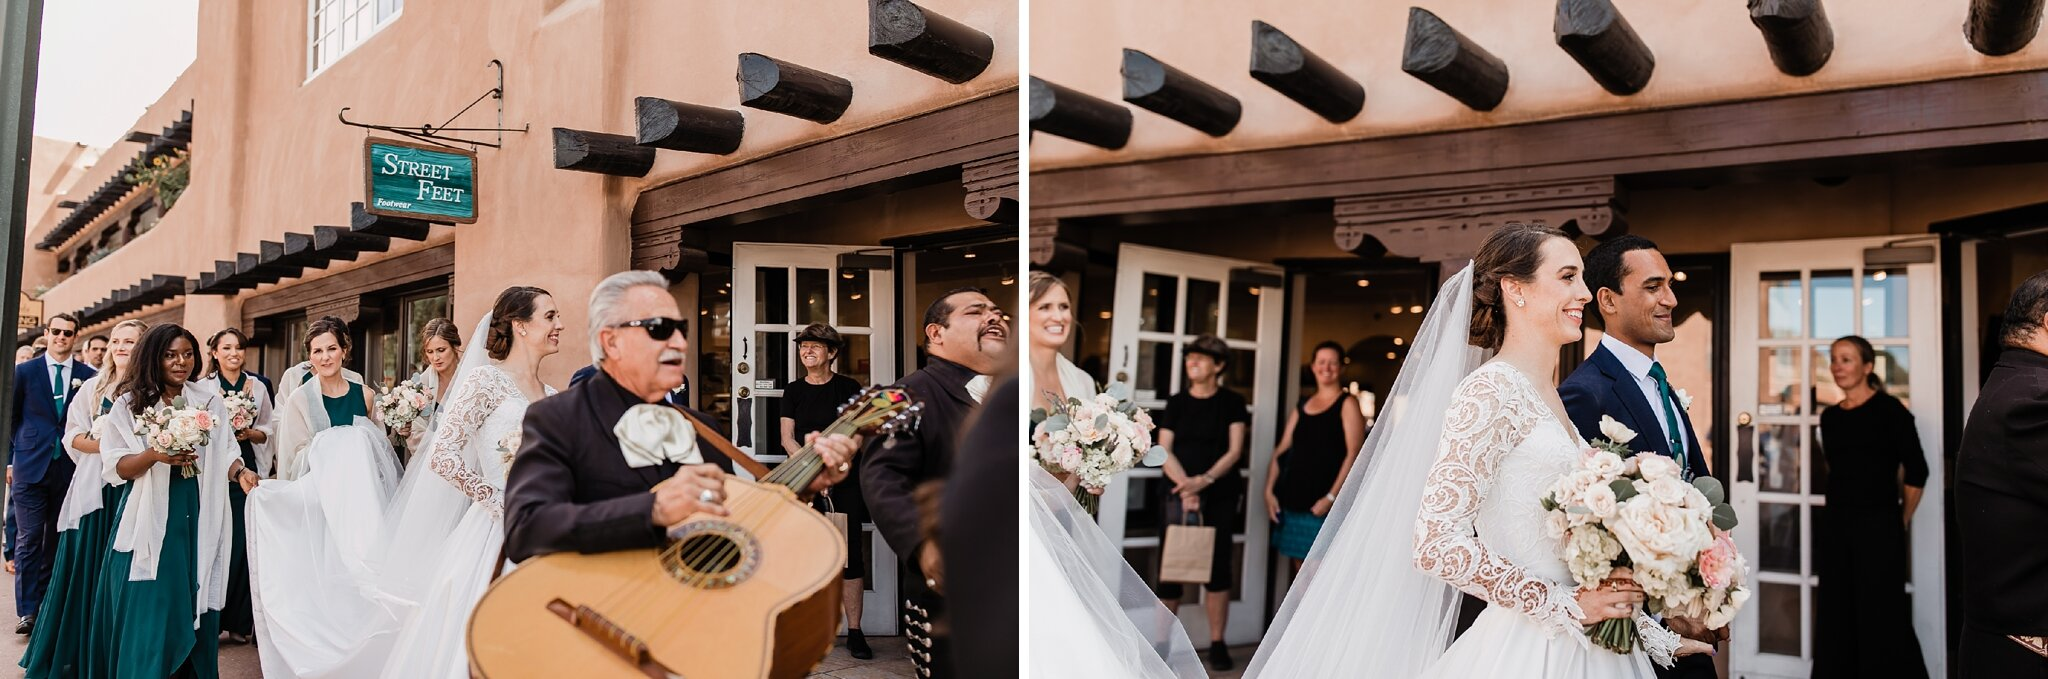 Alicia+lucia+photography+-+albuquerque+wedding+photographer+-+santa+fe+wedding+photography+-+new+mexico+wedding+photographer+-+new+mexico+wedding+-+hindu+wedding+-+catholic+wedding+-+multicultural+wedding+-+santa+fe+wedding_0043.jpg